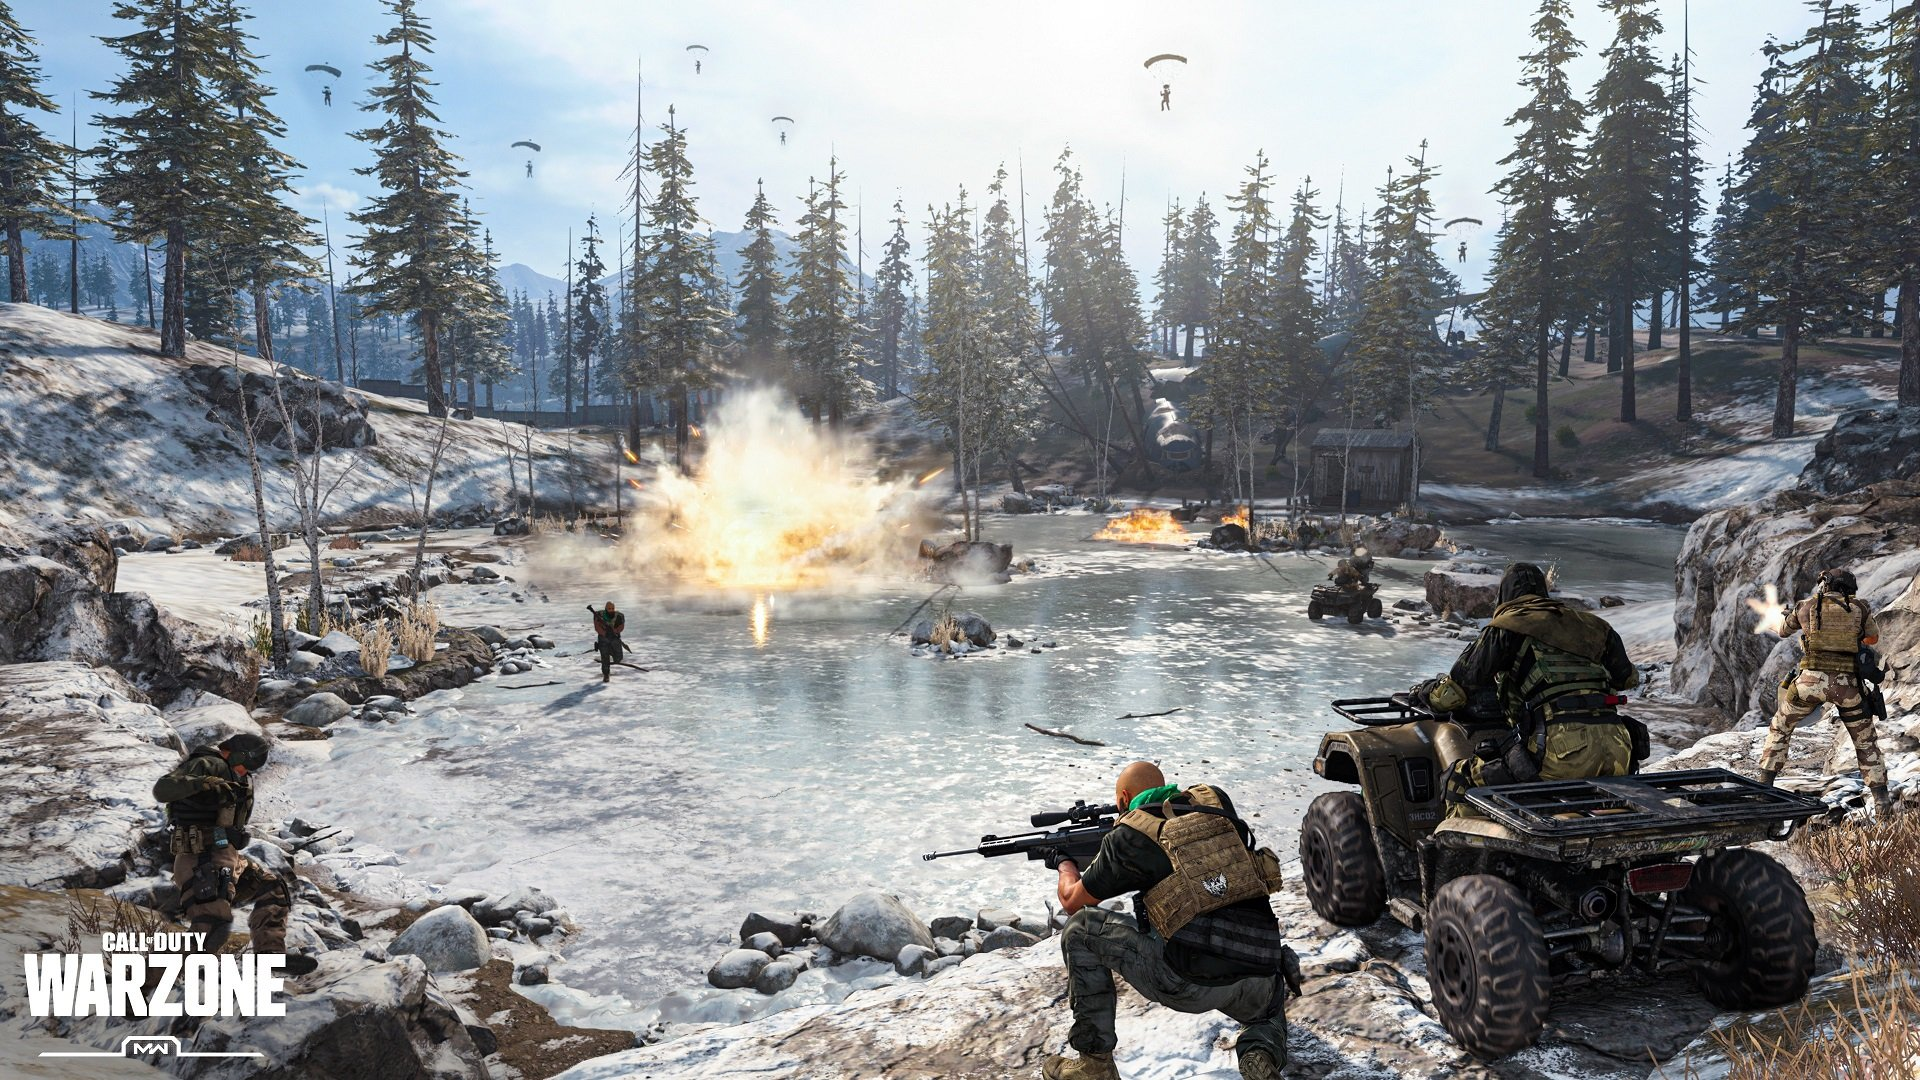 50,000 cheaters have bit the banhammer in Call of Duty: Warzone screenshot